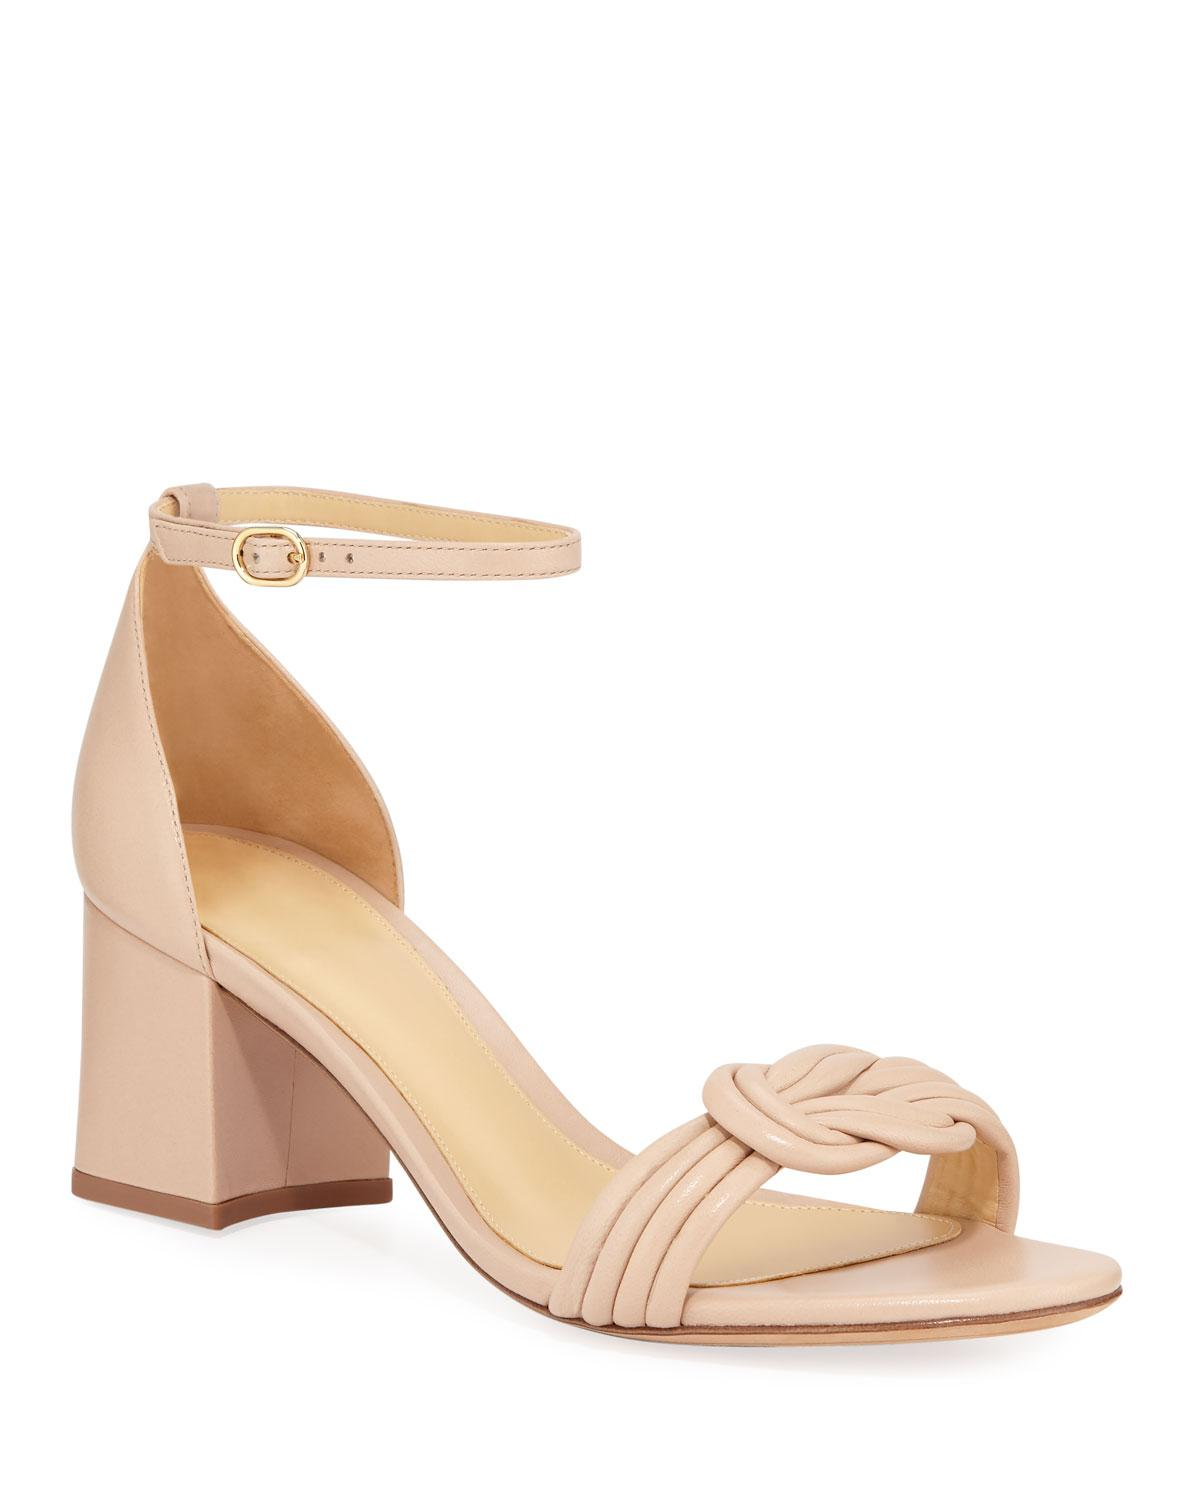 3496fca777 Alexandre Birman. Women's Natural Malica Knot Block-heel Leather Sandals